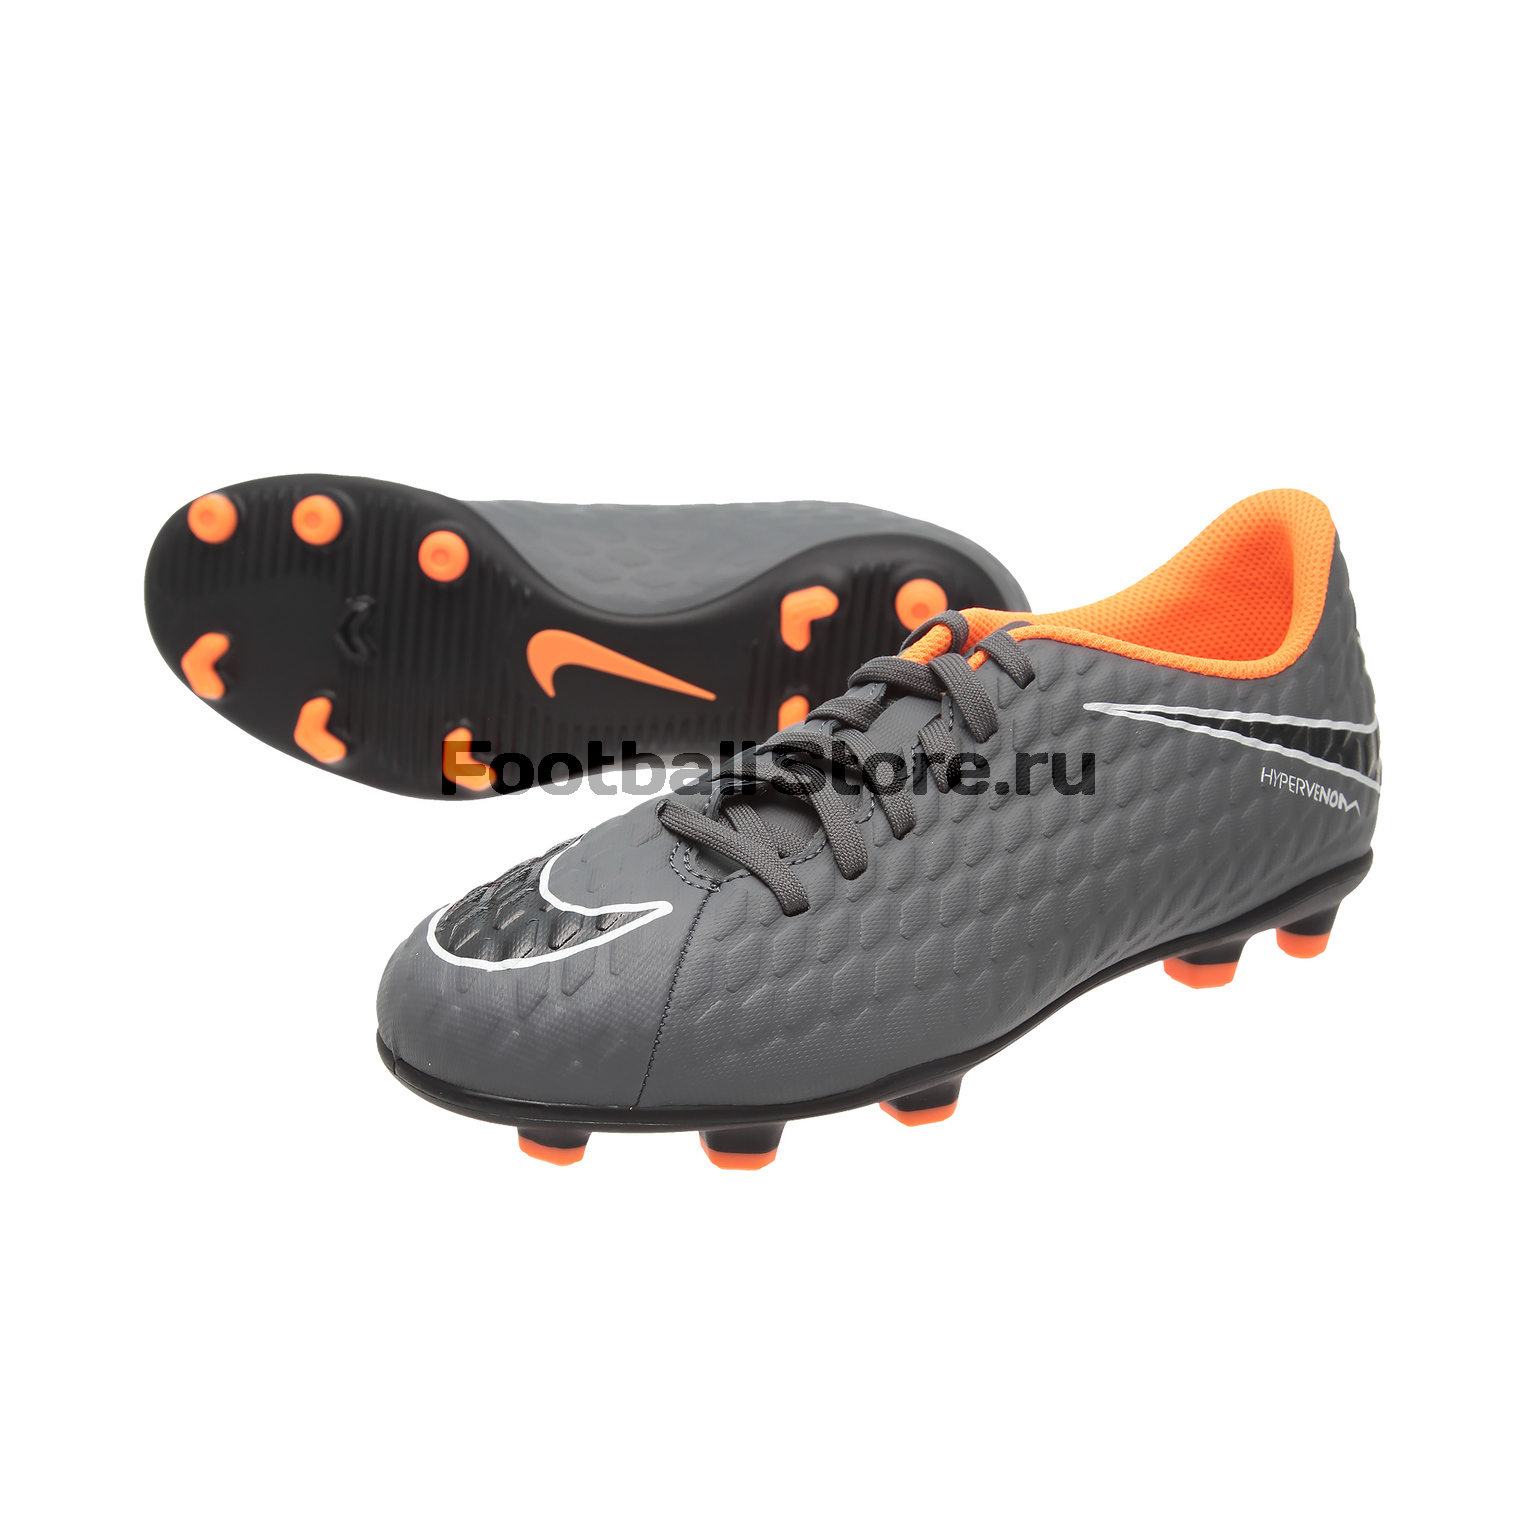 Бутсы Nike JR Phantom 3 Club FG AH7290-081 бутсы nike hypervenom phantom iii club fg jrah7290 081